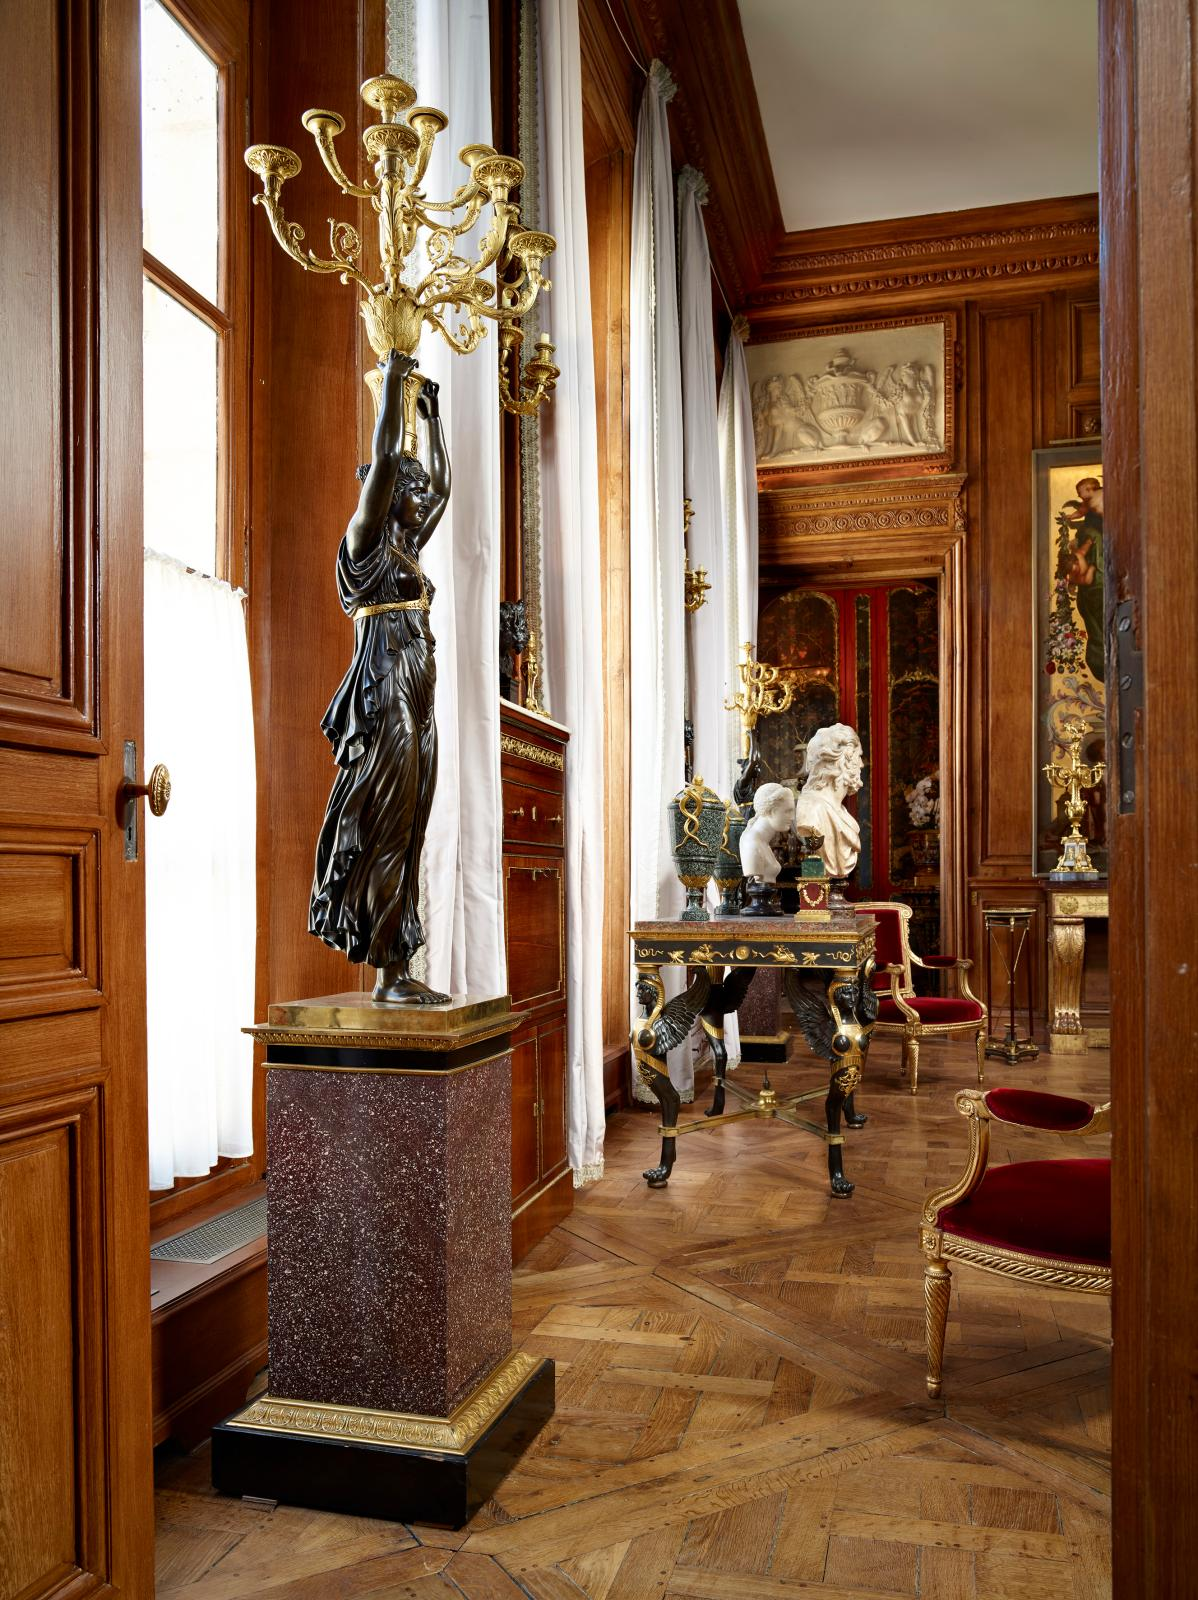 In the Louis XVI Grand Salon, two of Thomire's creations: the large candelabra from the Demidoff collections, and the winged sphinx table from the Rot